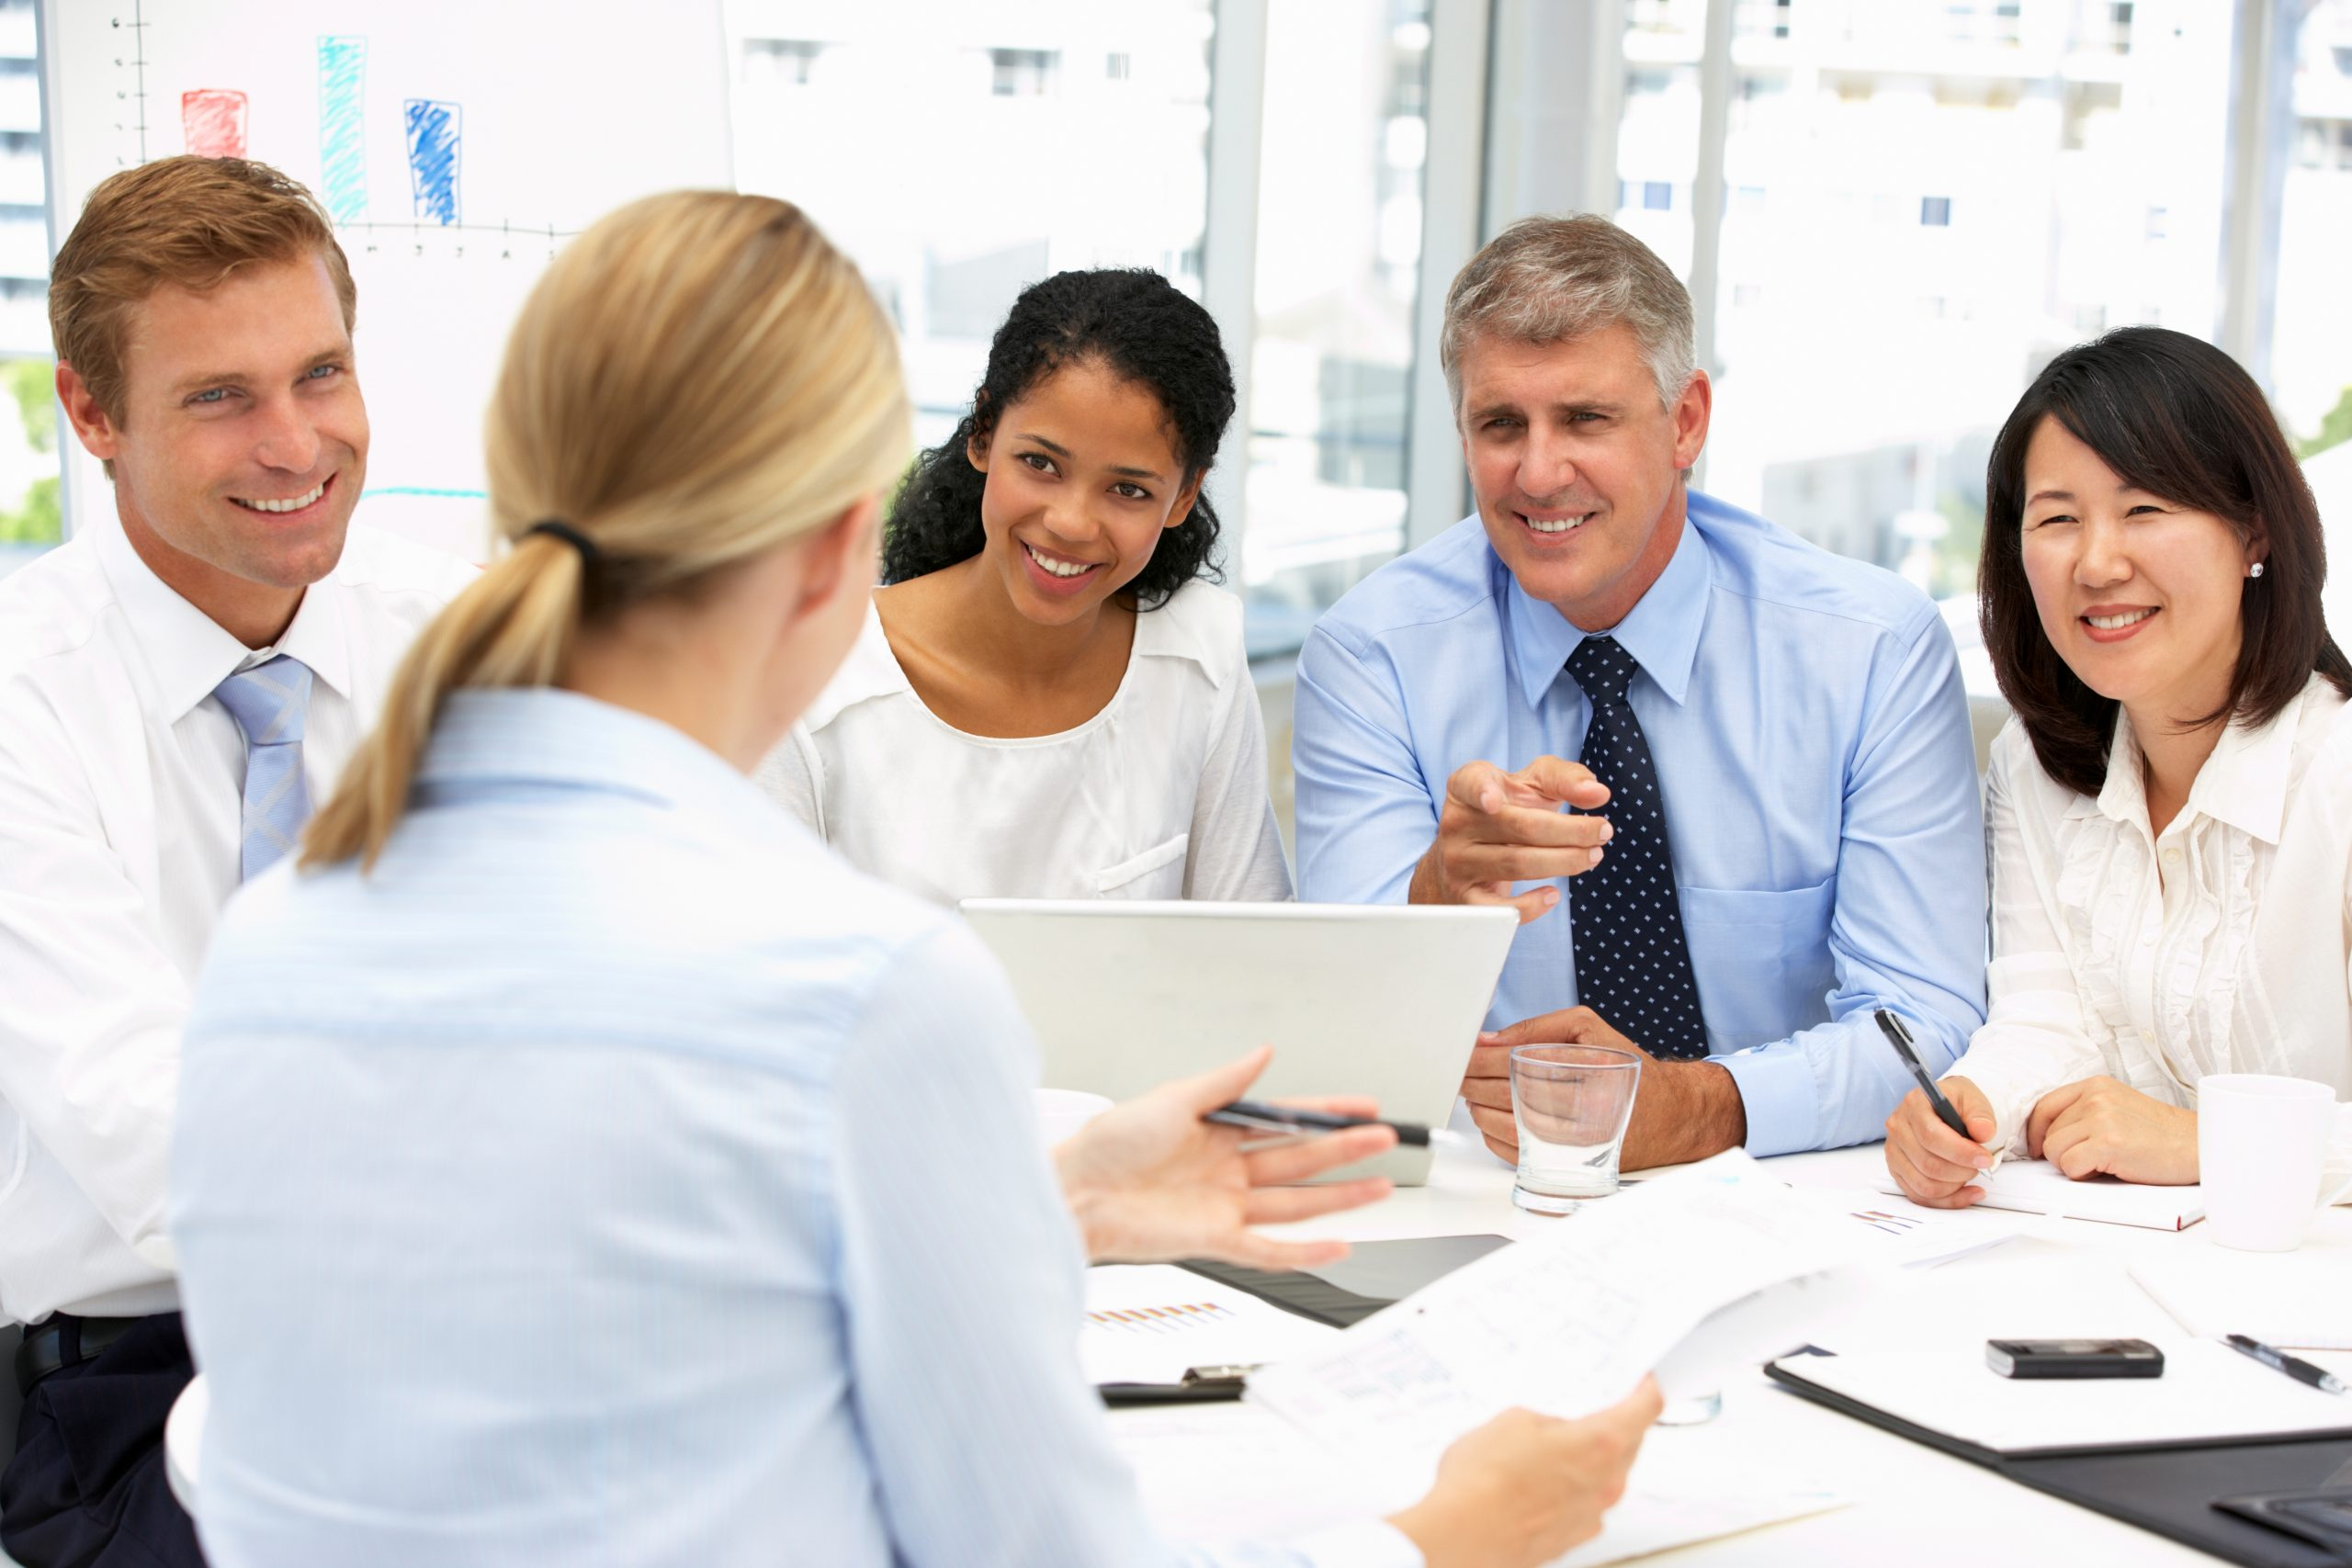 Group or Team Coaching - A Smart Opportunity